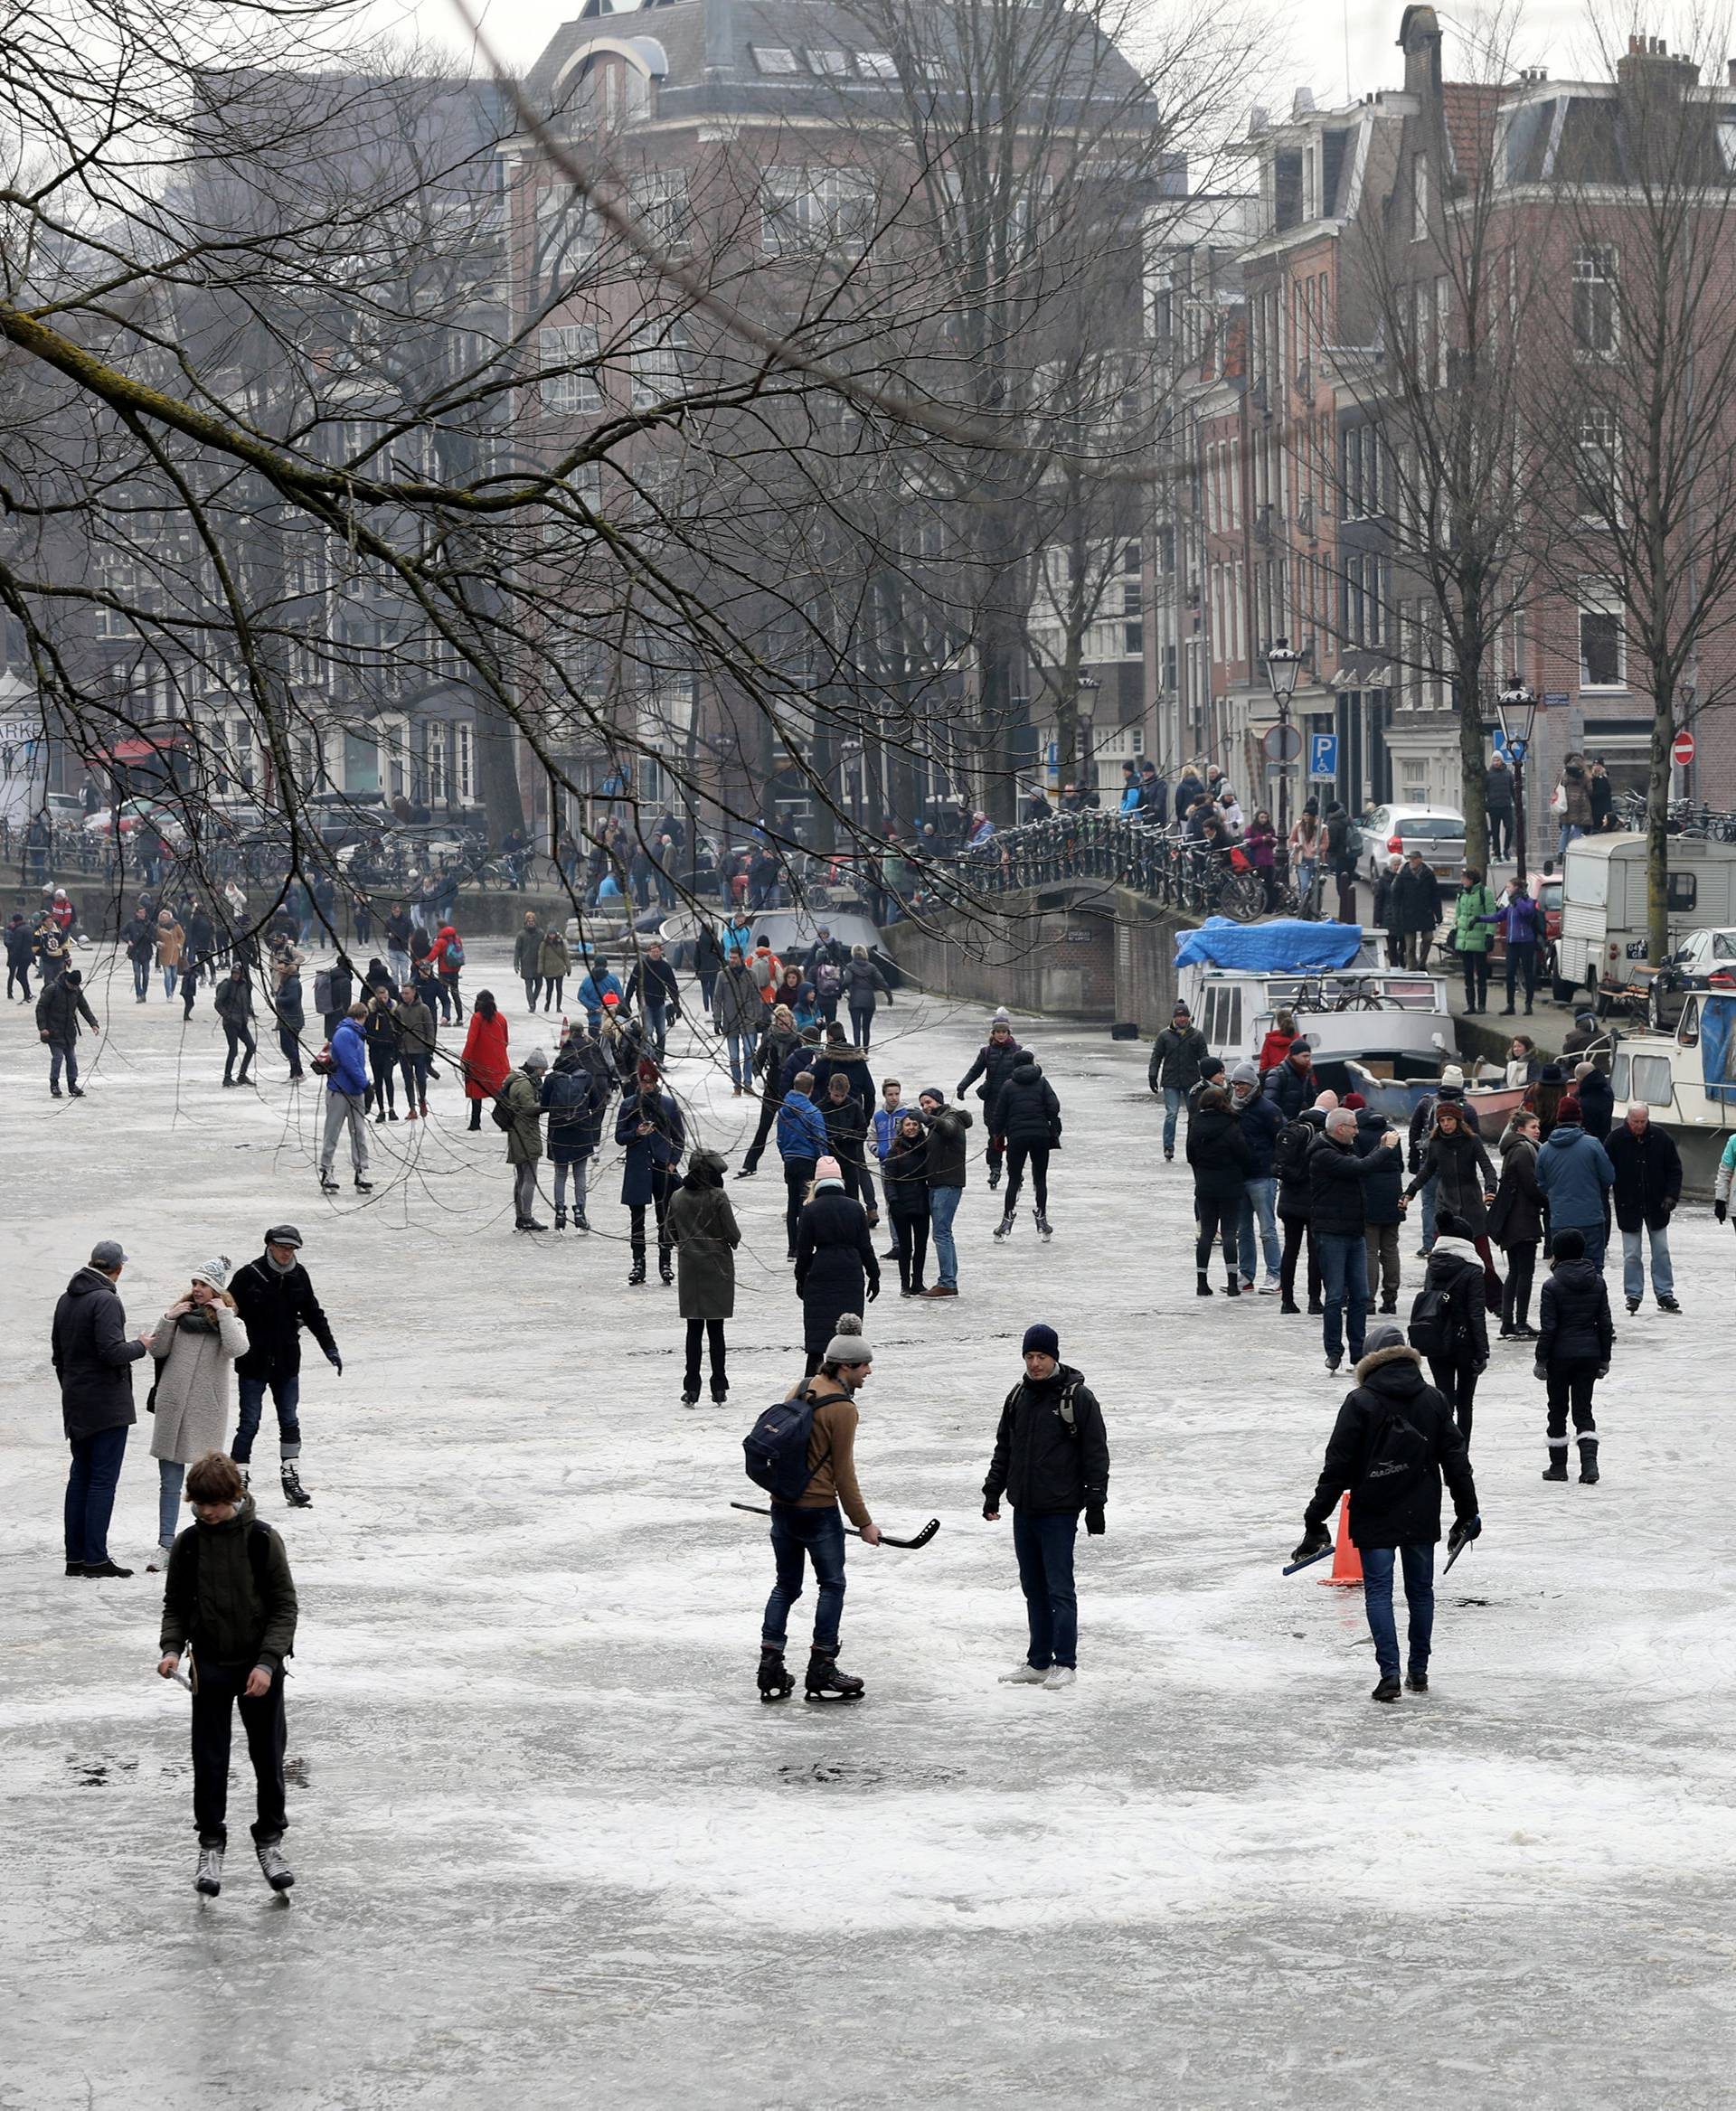 Ice skaters skate on frozen canal during icy weather in Amsterdam